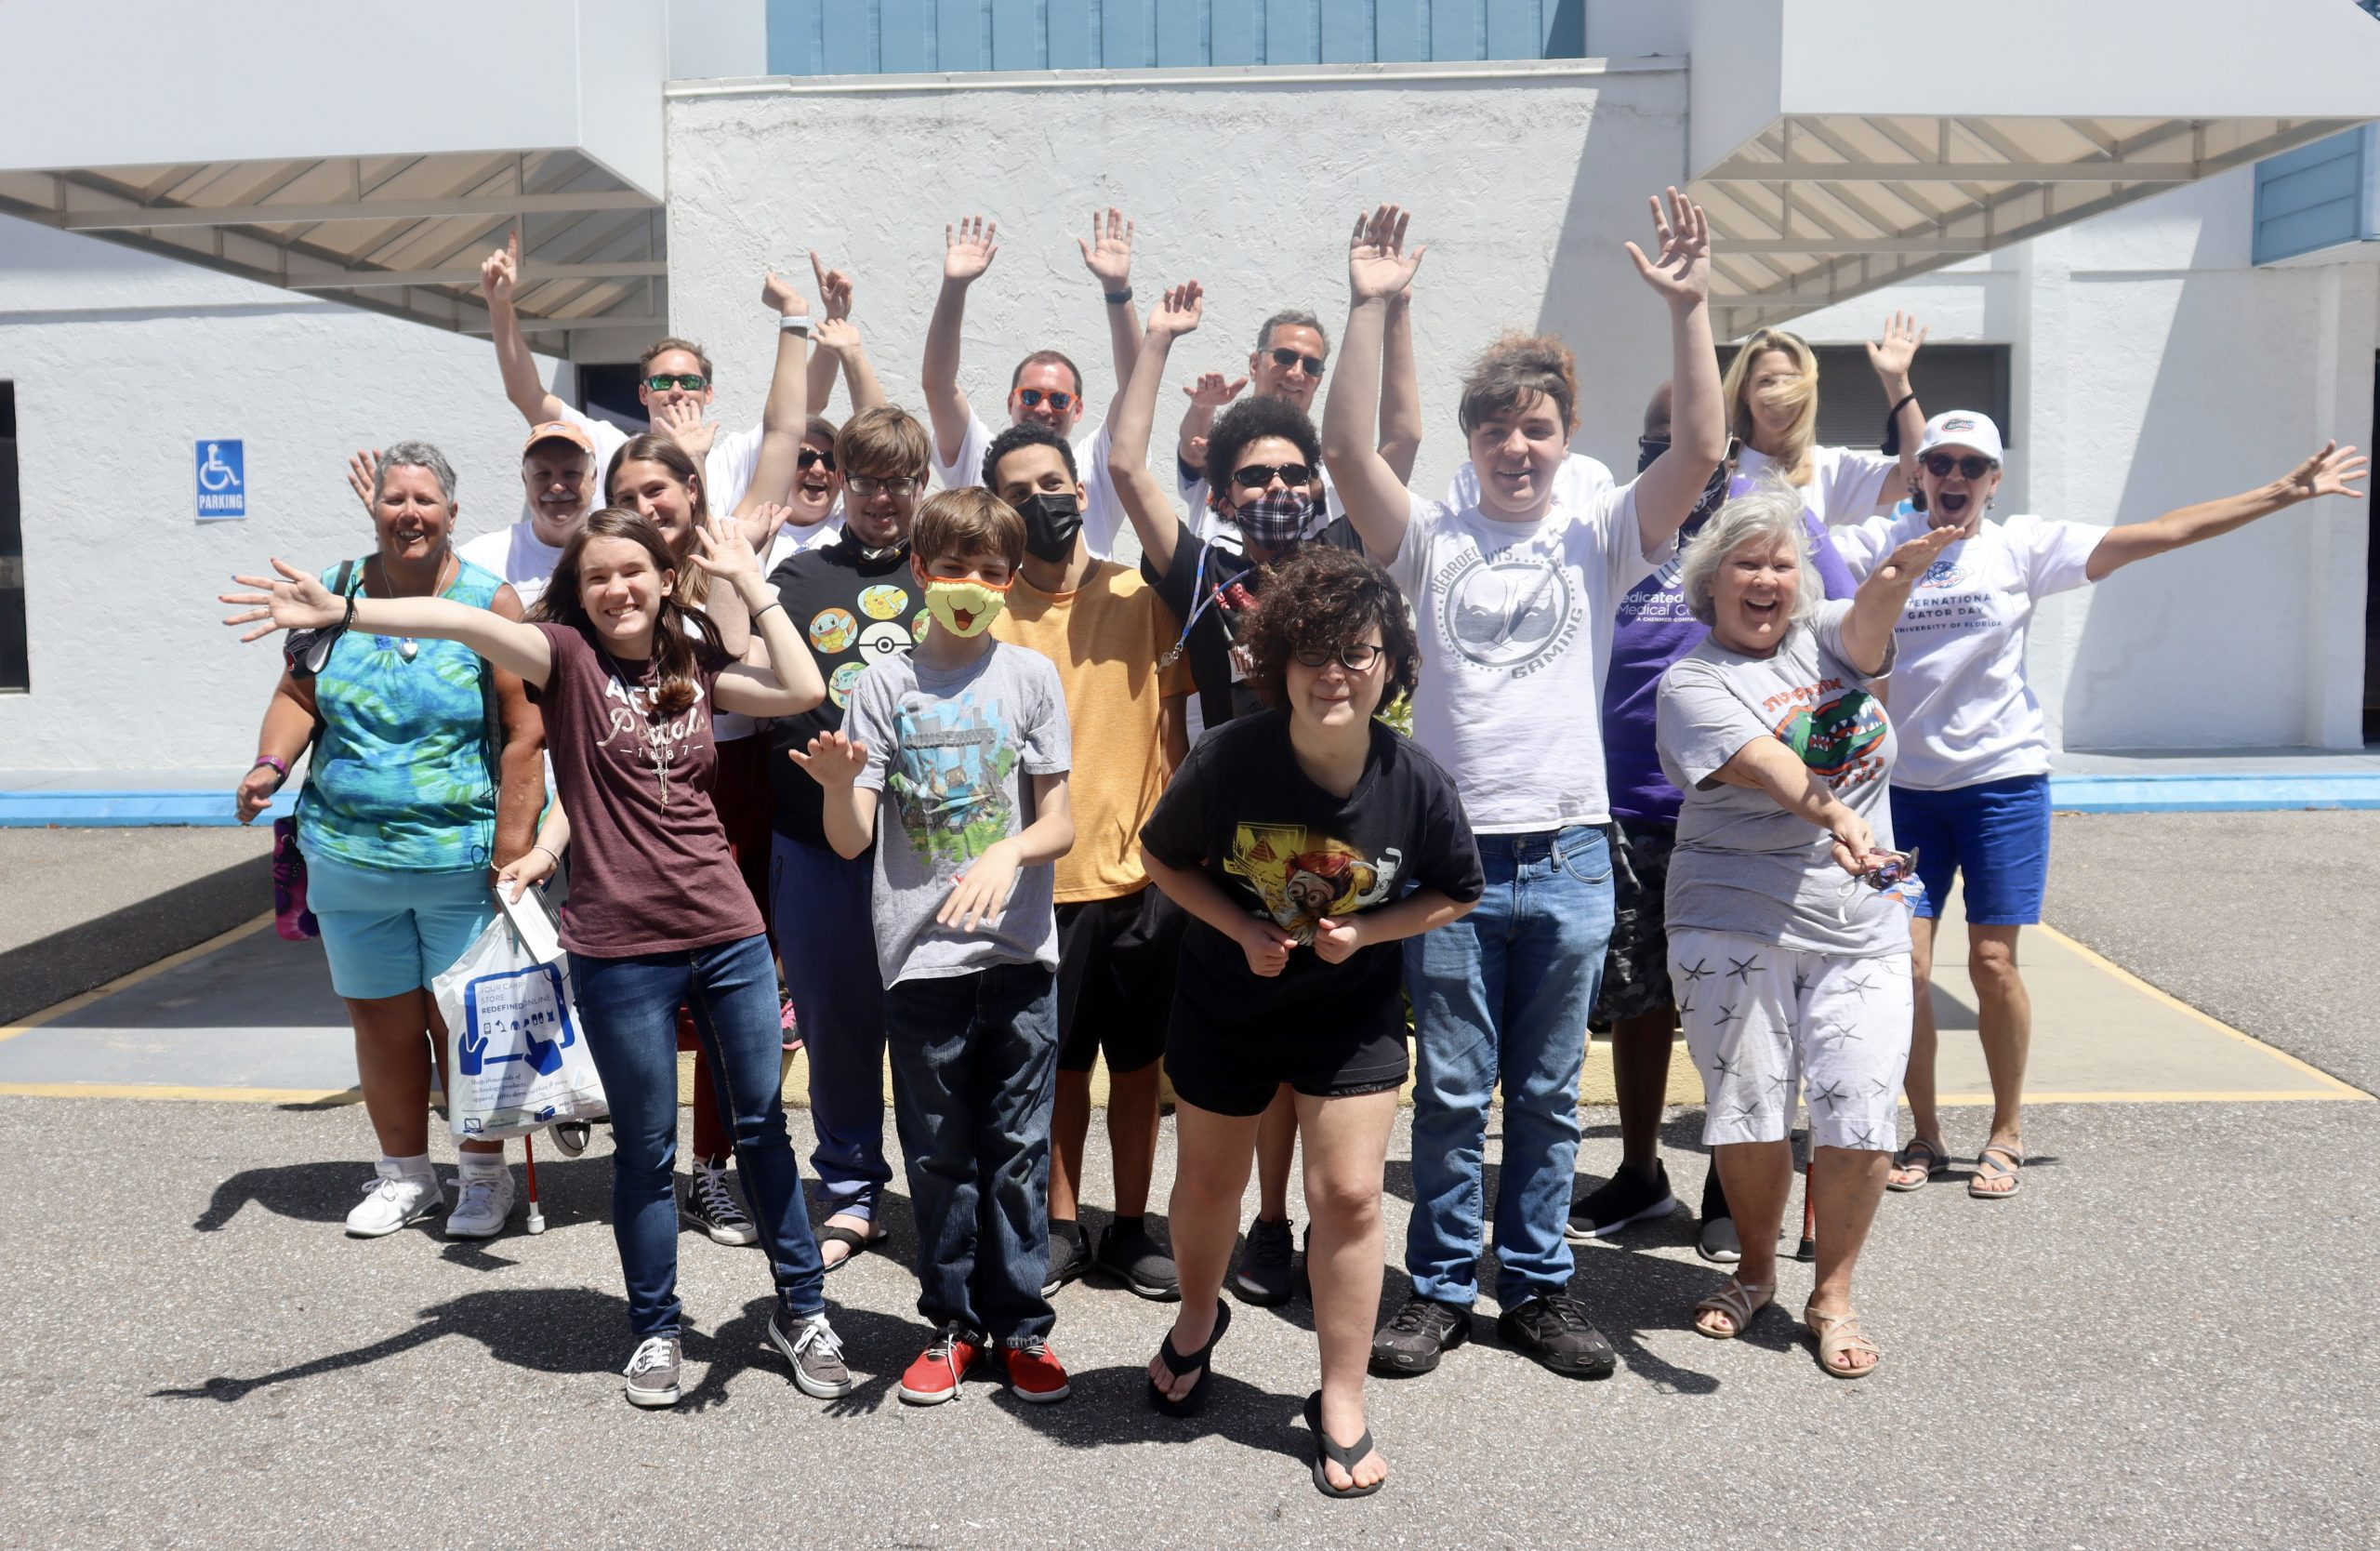 A large group of teens and adults with their hands up in front of the Lighthouse building on a sunny day.